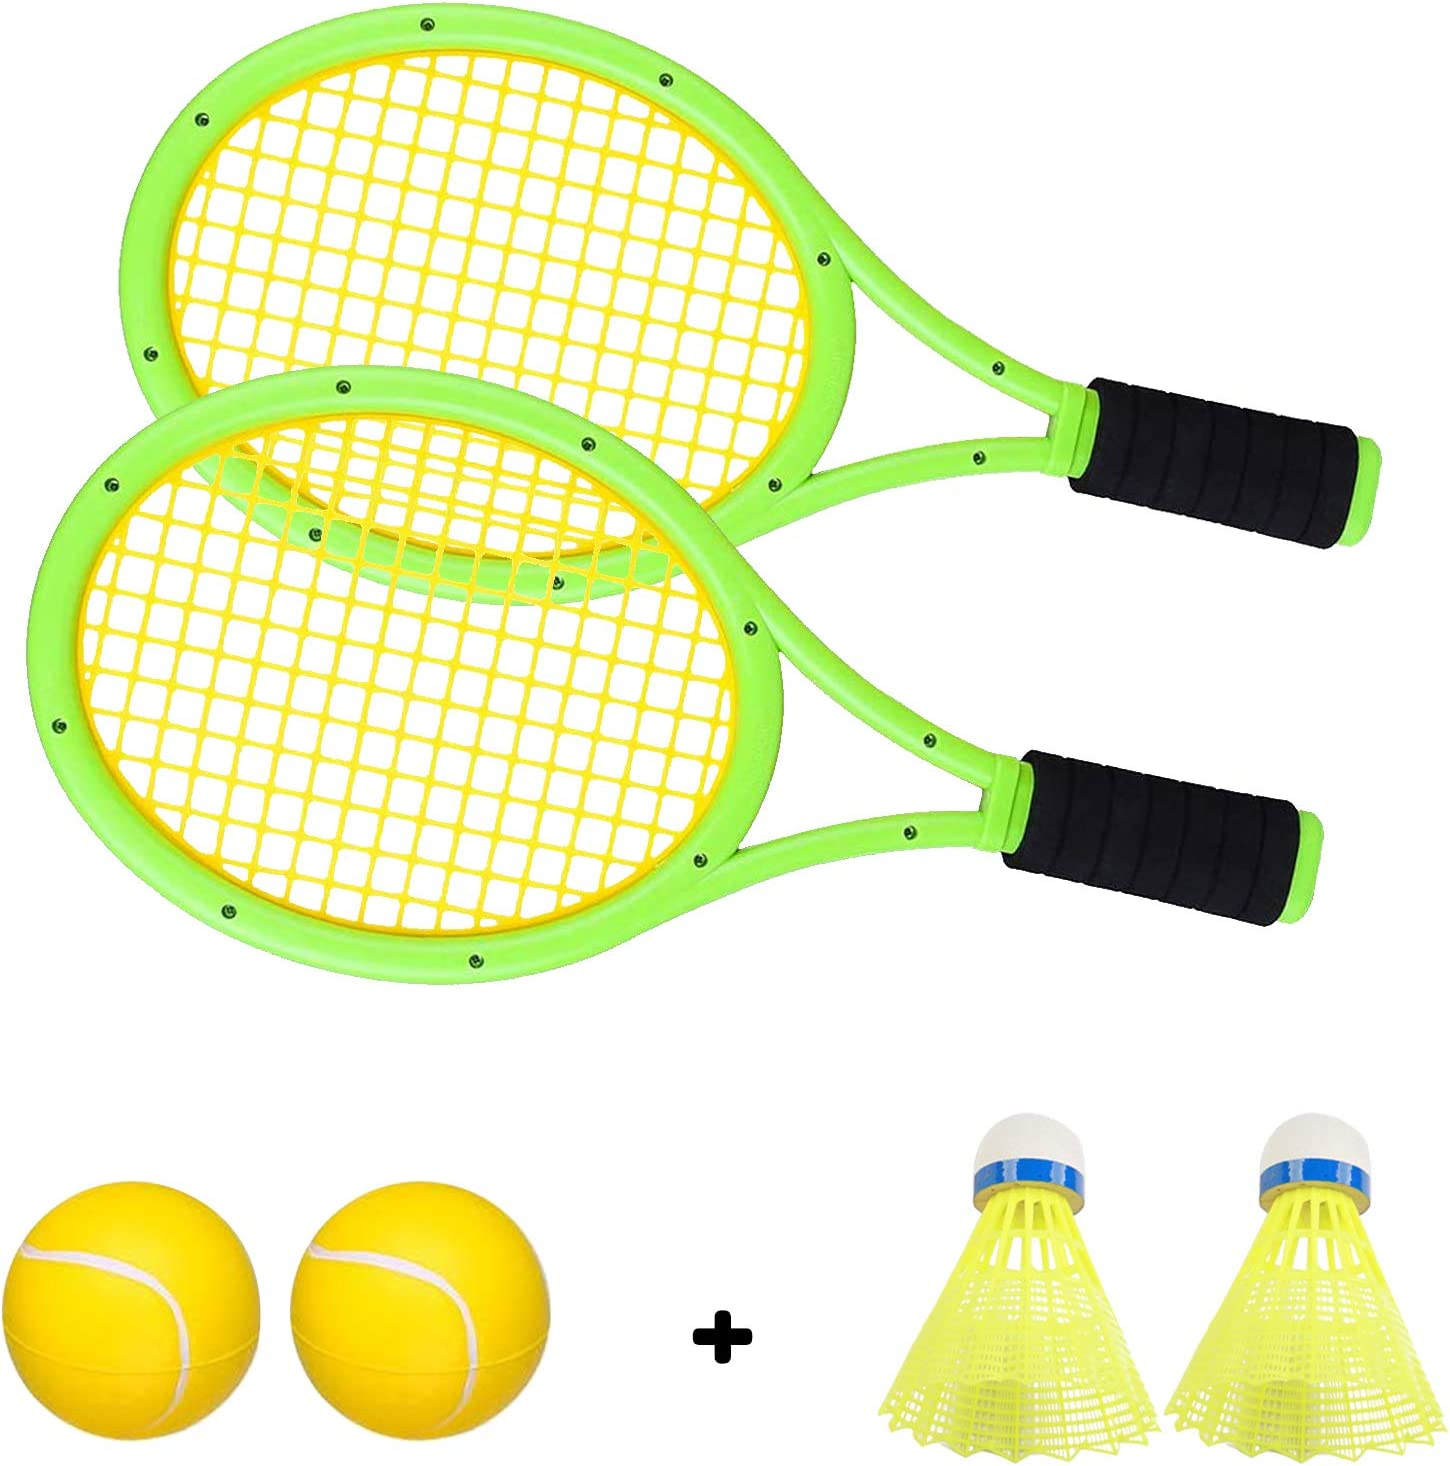 Crefotu Kids Tennis Racket, Plastic Tennis Racket Toys for Children Outdoor/Indoor Sport Game : Sports & Outdoors